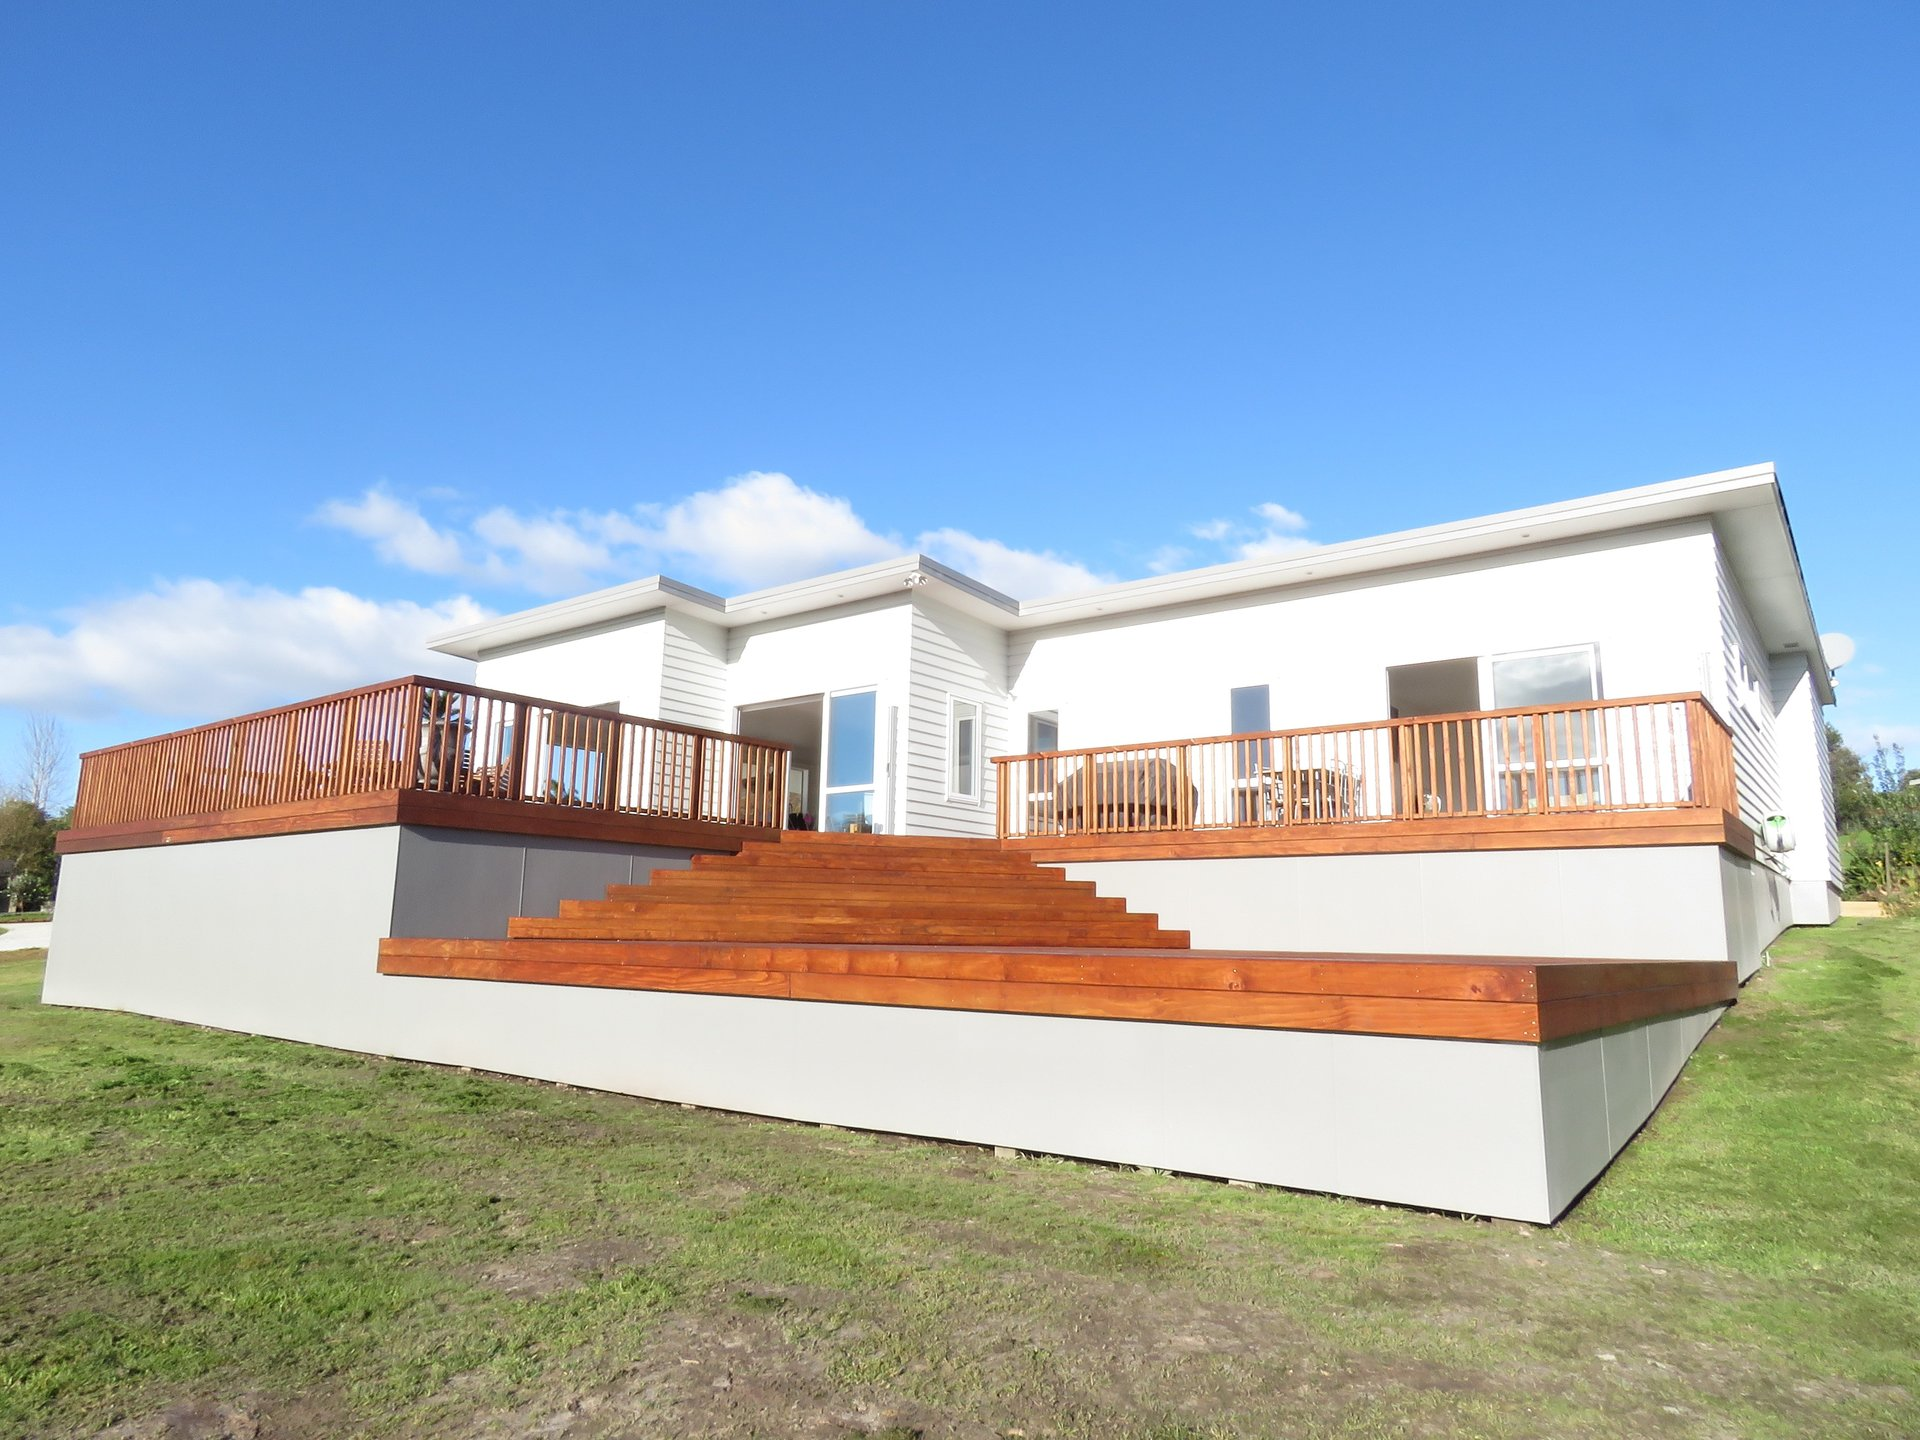 Residential Building Kaitaia Nz Probuild Mangonui Limited